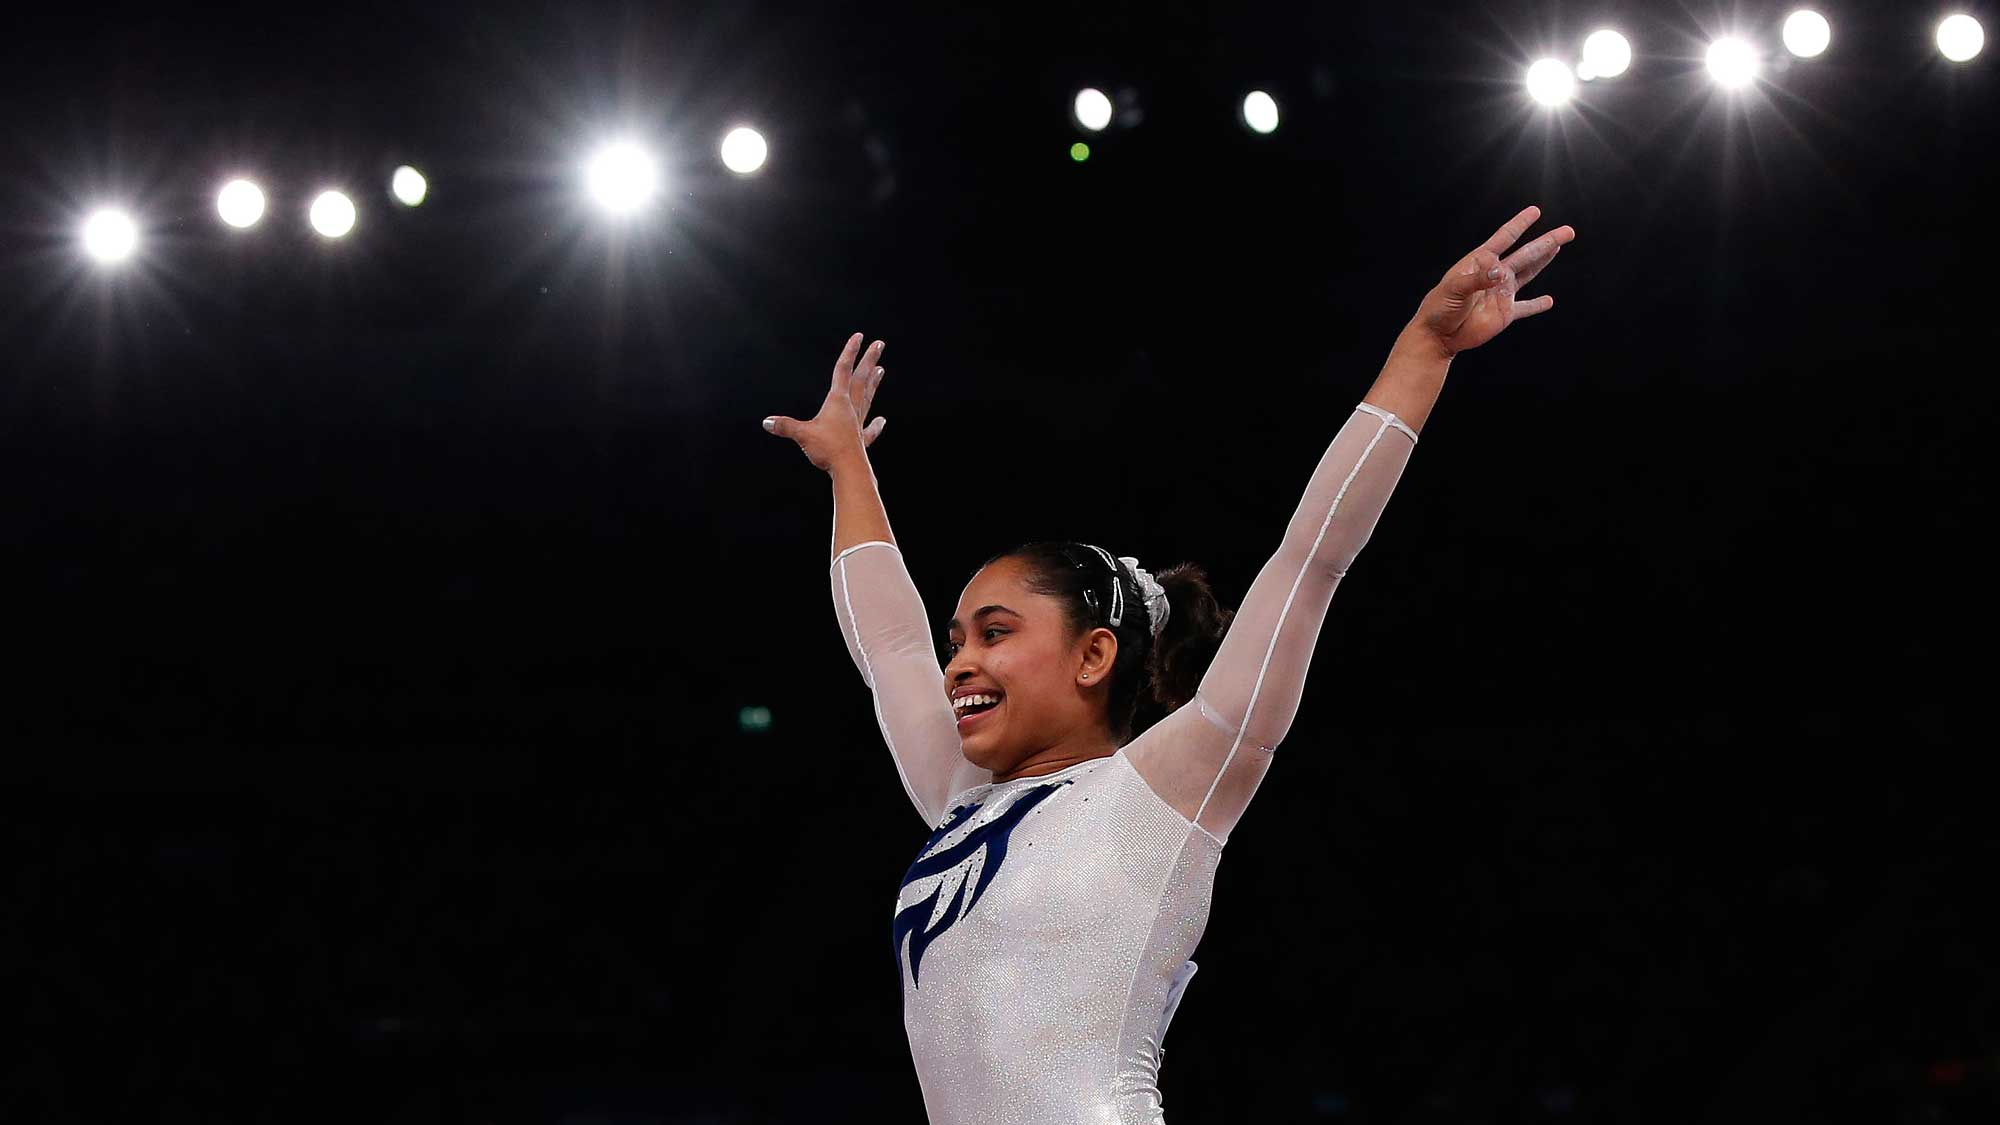 Dipa karmakar - Indian Gymnast